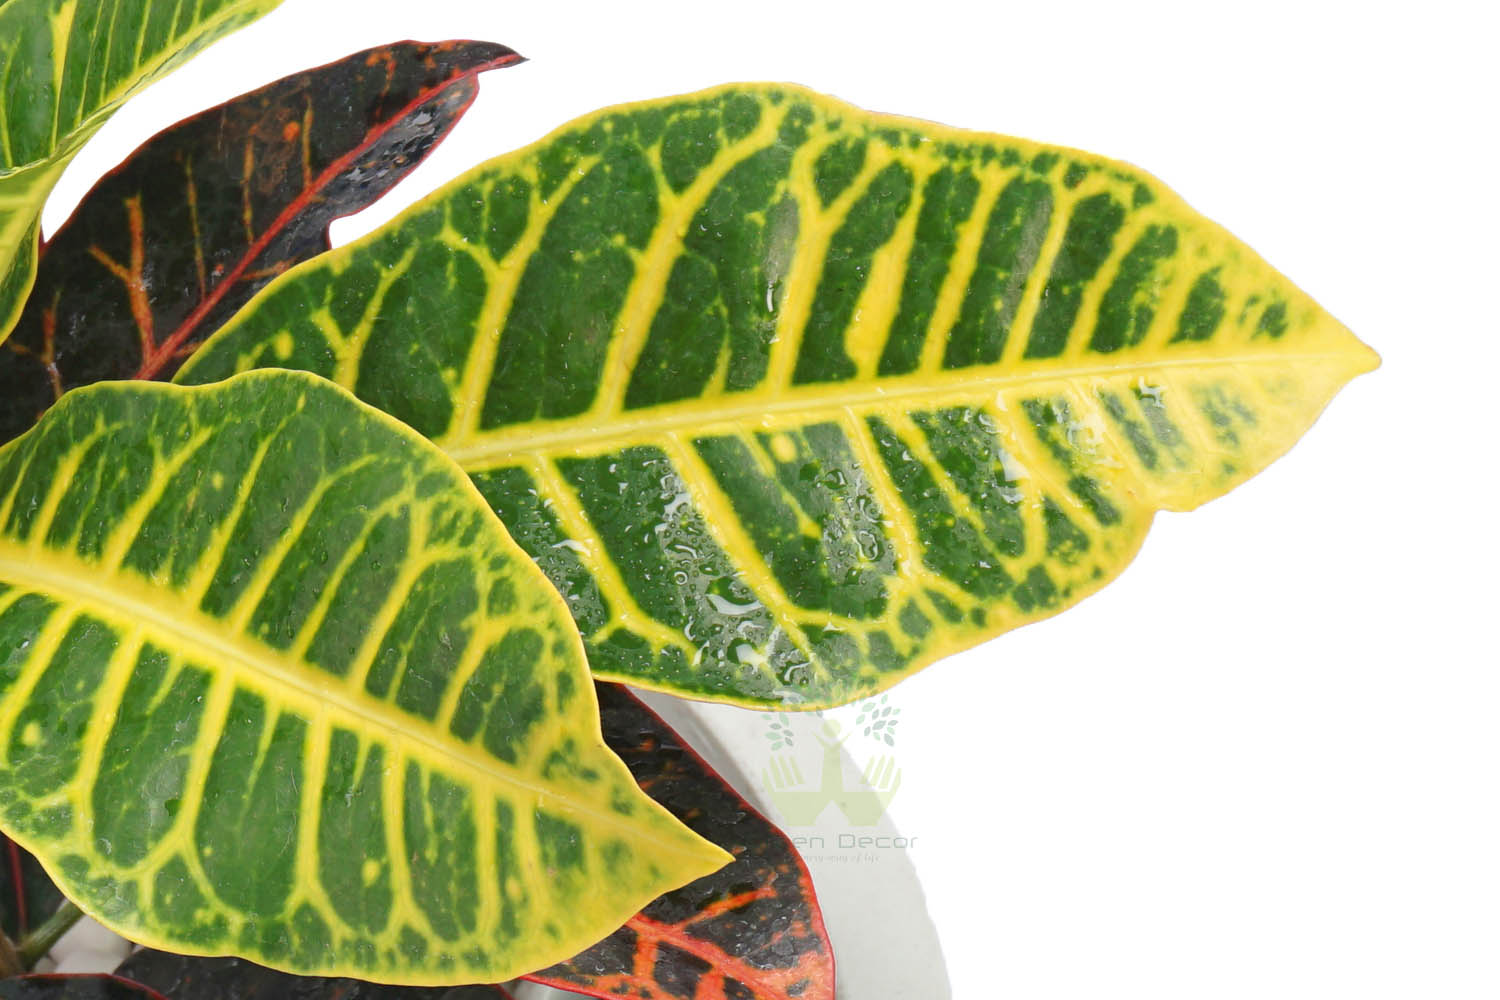 Buy Croton Variegatum Petra Plants , White Pots and seeds in Delhi NCR by the best online nursery shop Greendecor.